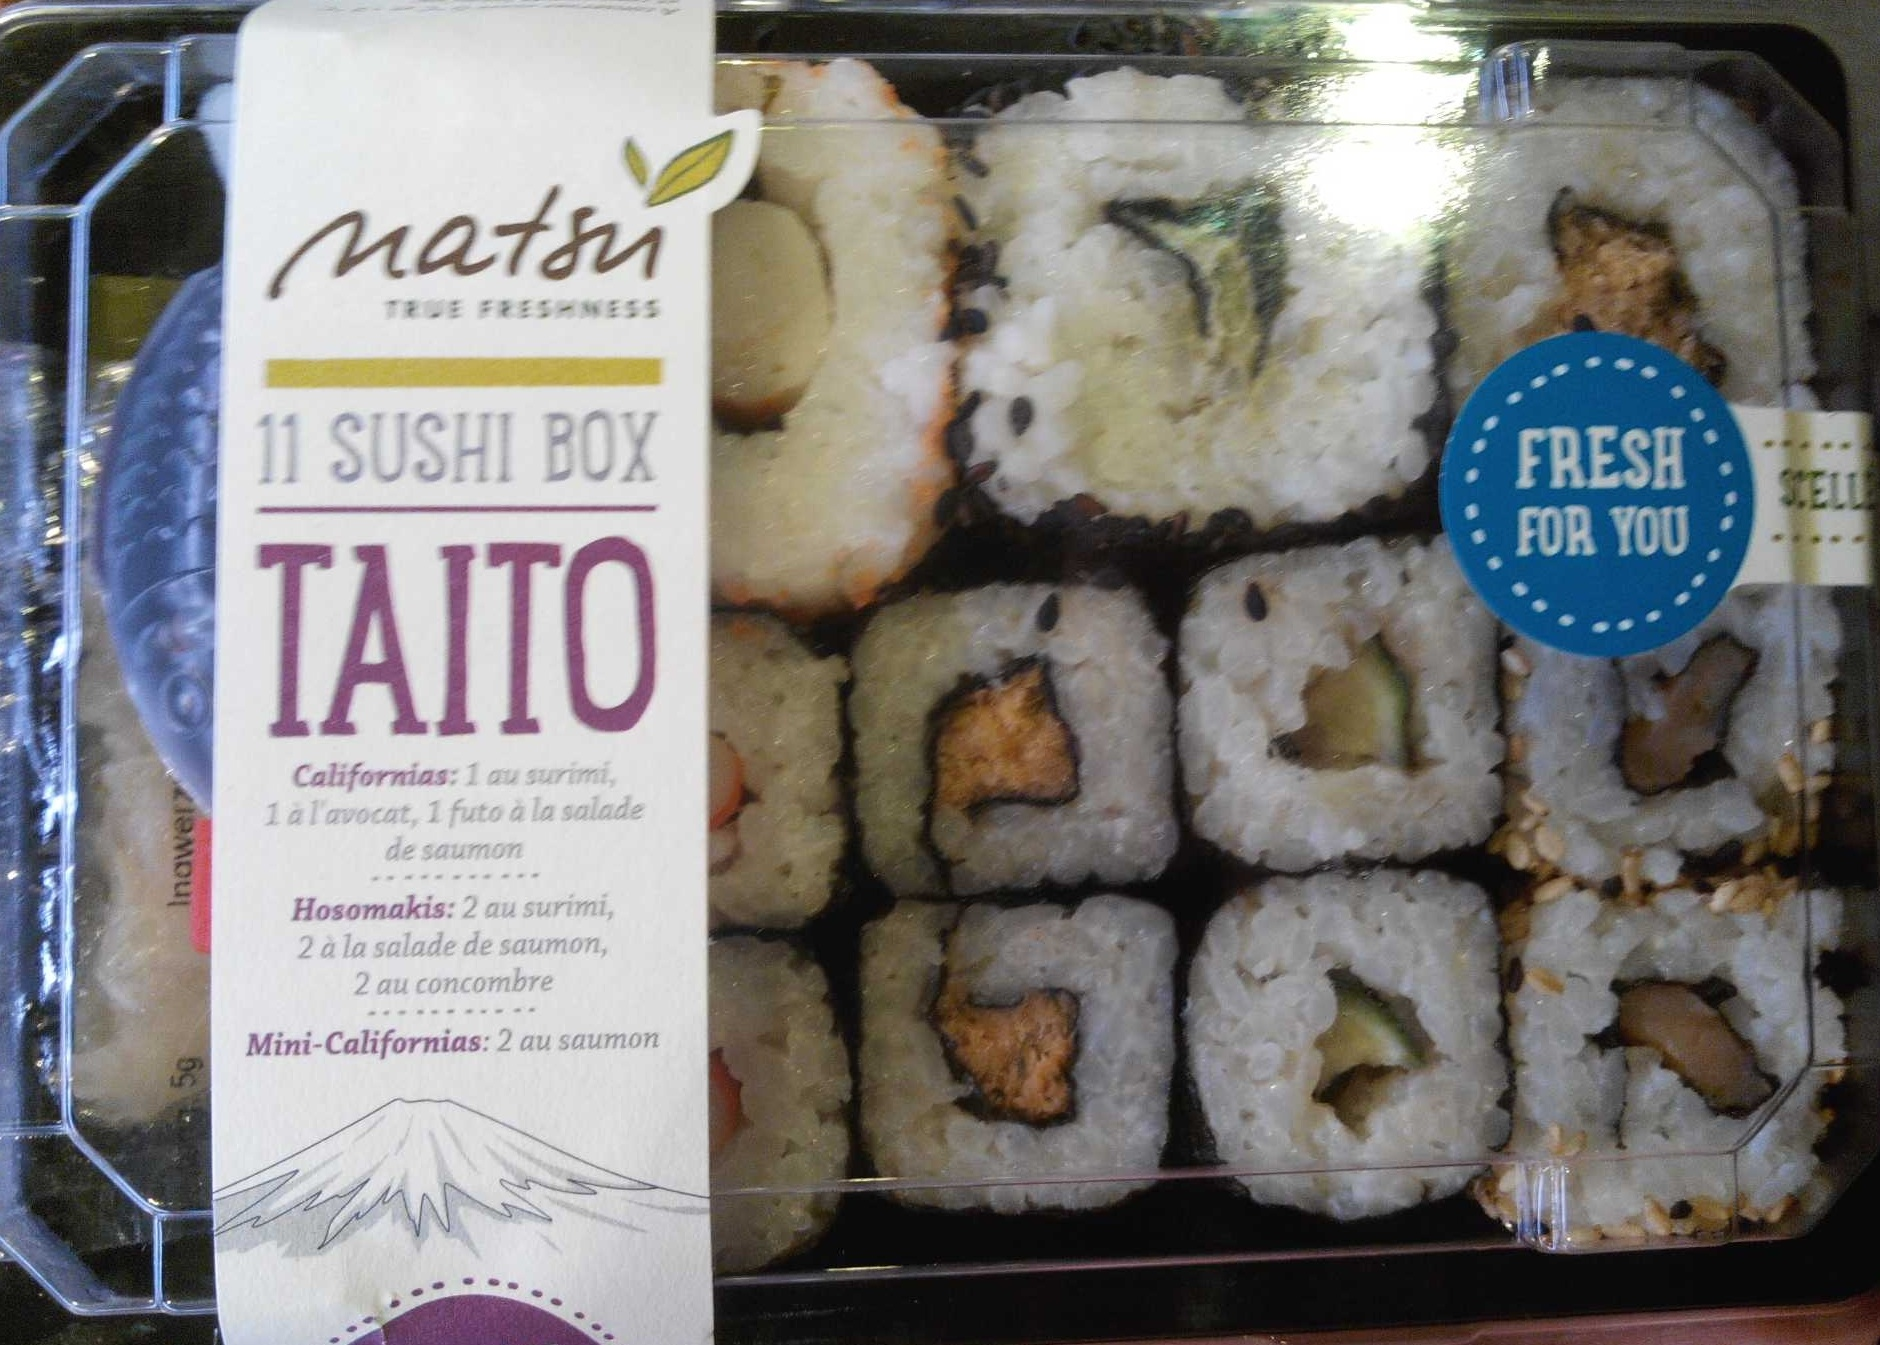 11 Sushi Box Taito - Product - fr